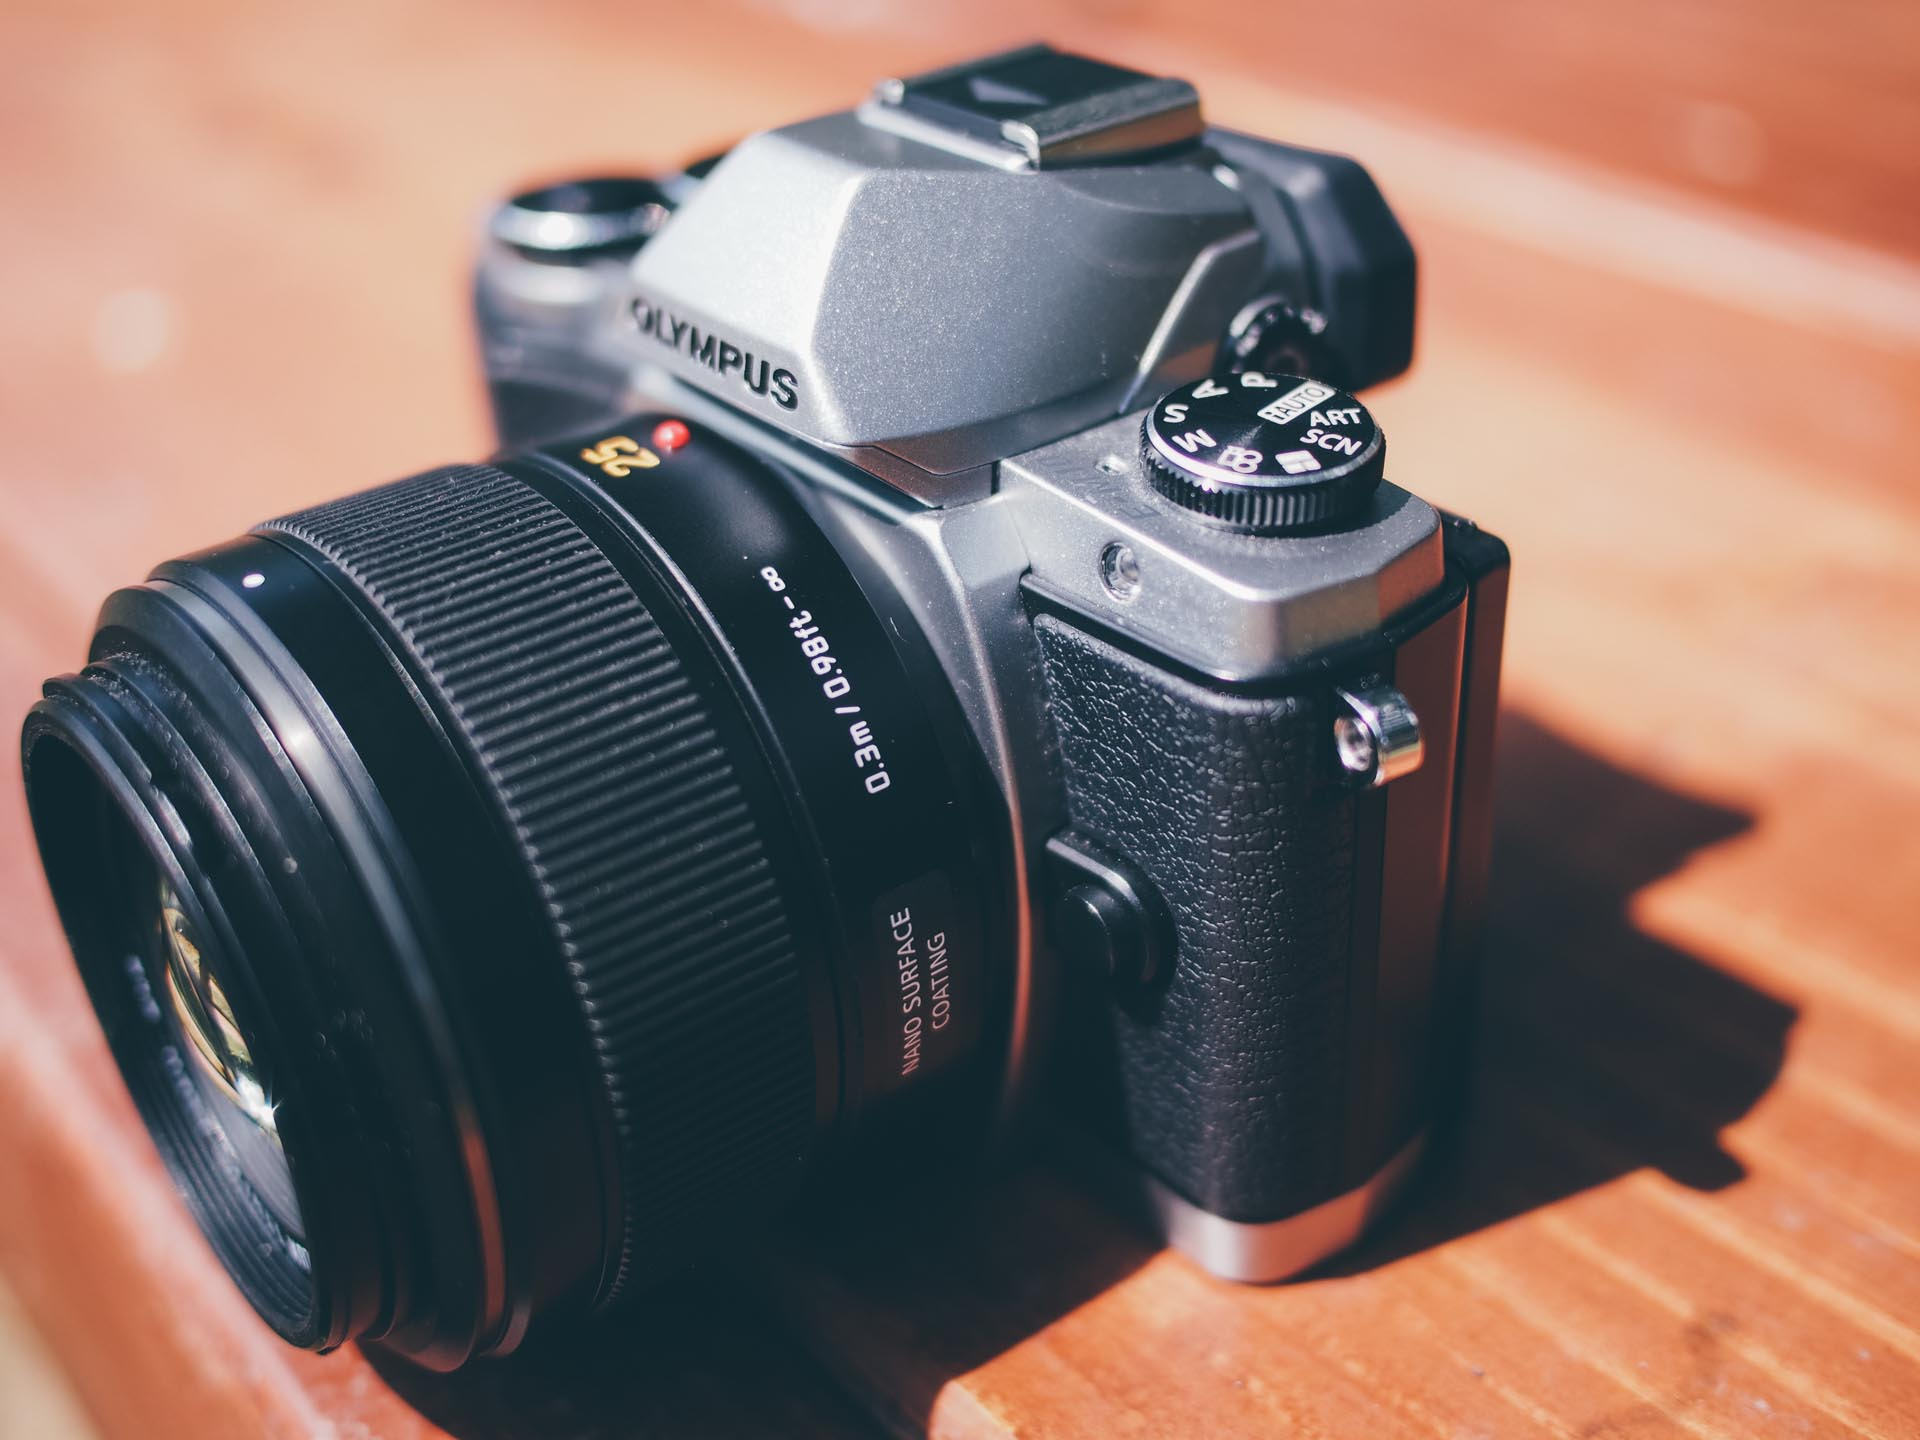 The Olympus E-M10 with the Panasonic Summilux 25 f/1.4 lens attached. Arguably the single best lens for the Micro Four Thirds system.